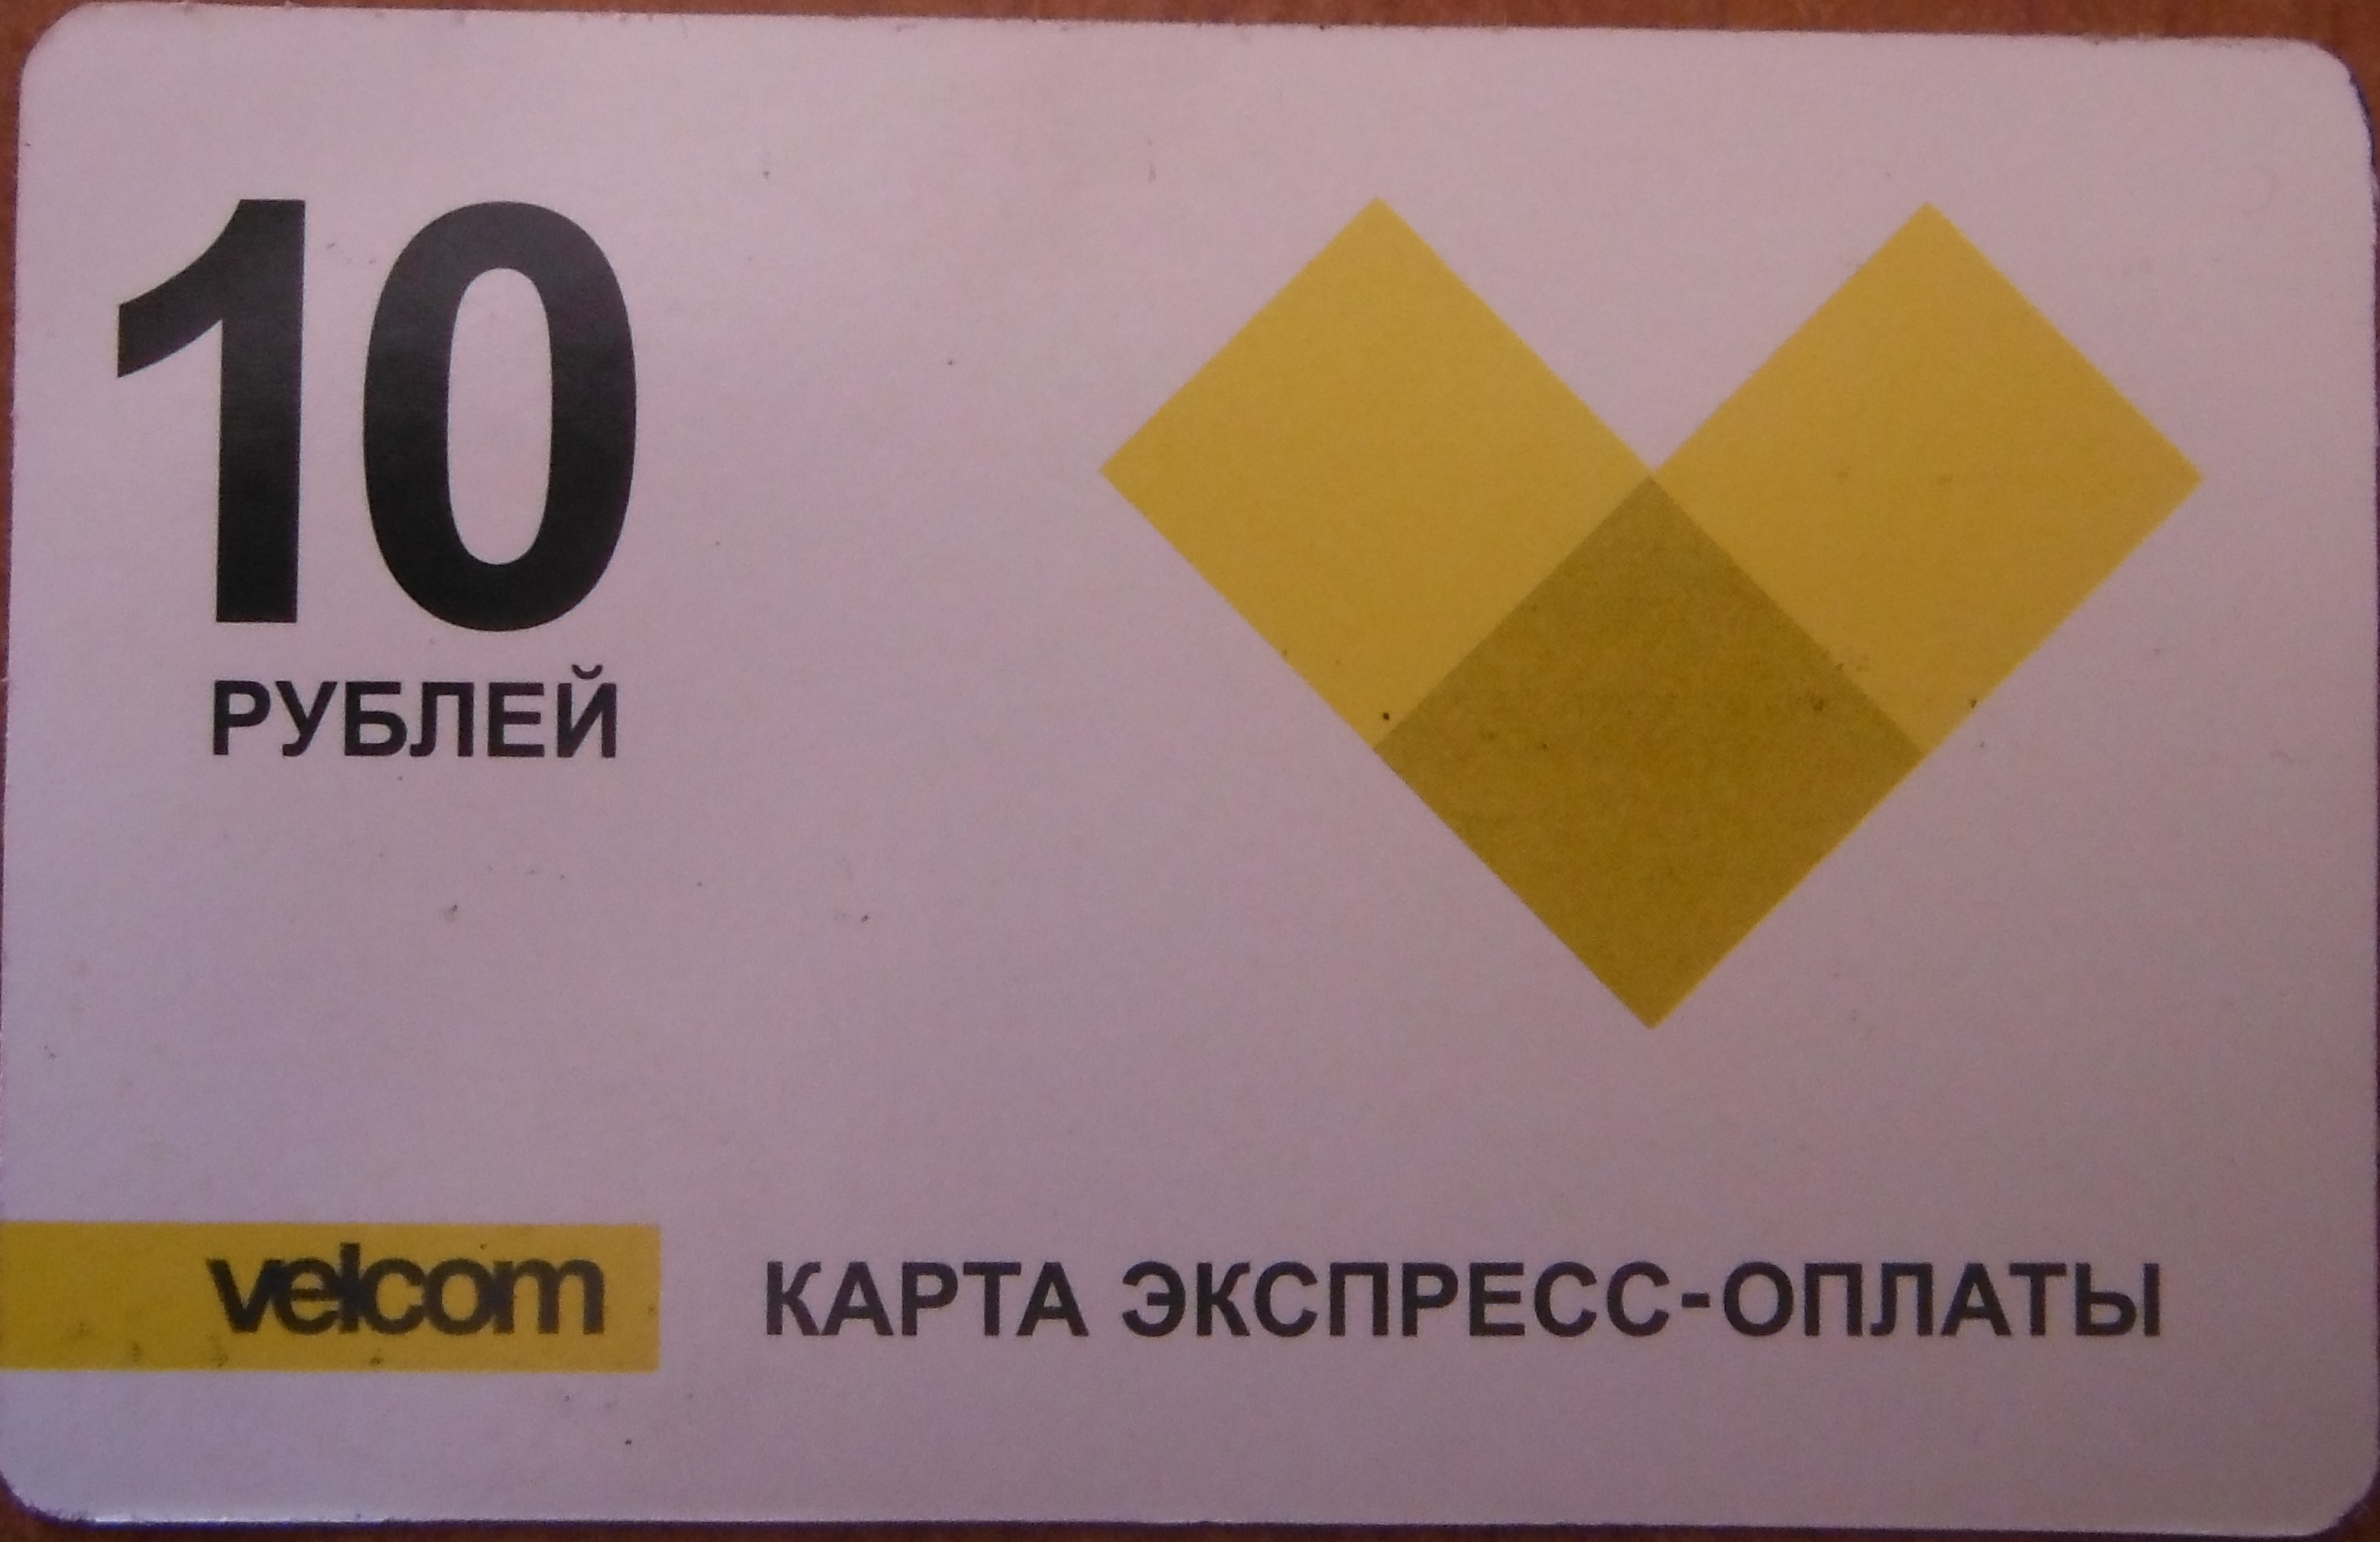 Velcom (Belarus) - amount of 10 BYN